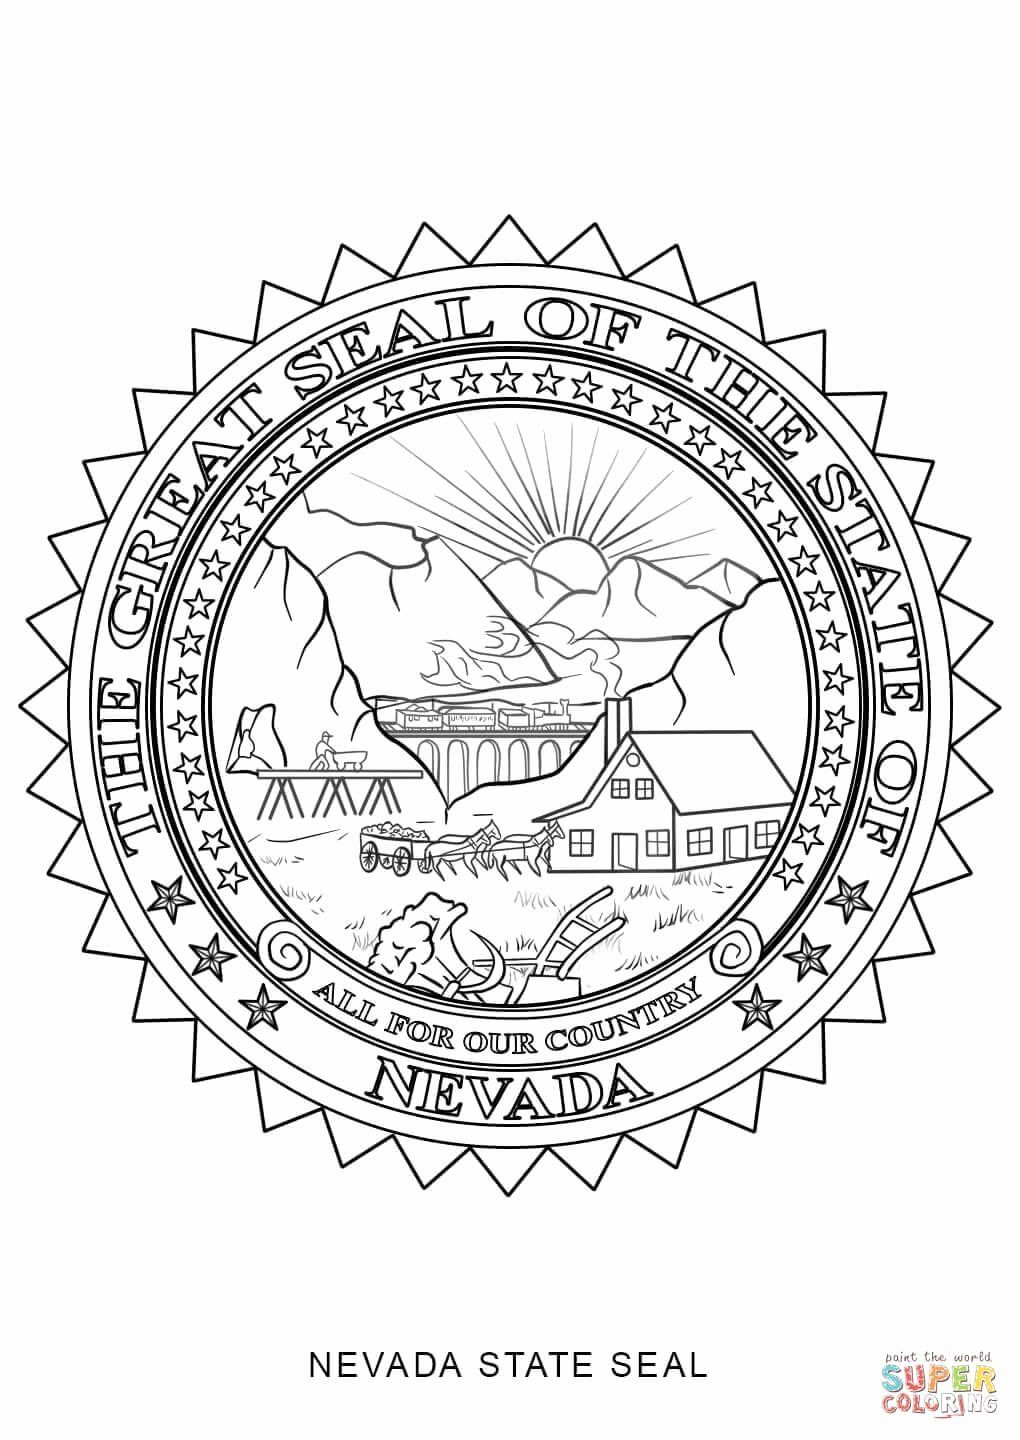 Virginia State Flag Coloring Page Luxury Nevada State Seal Coloring Page Nevada